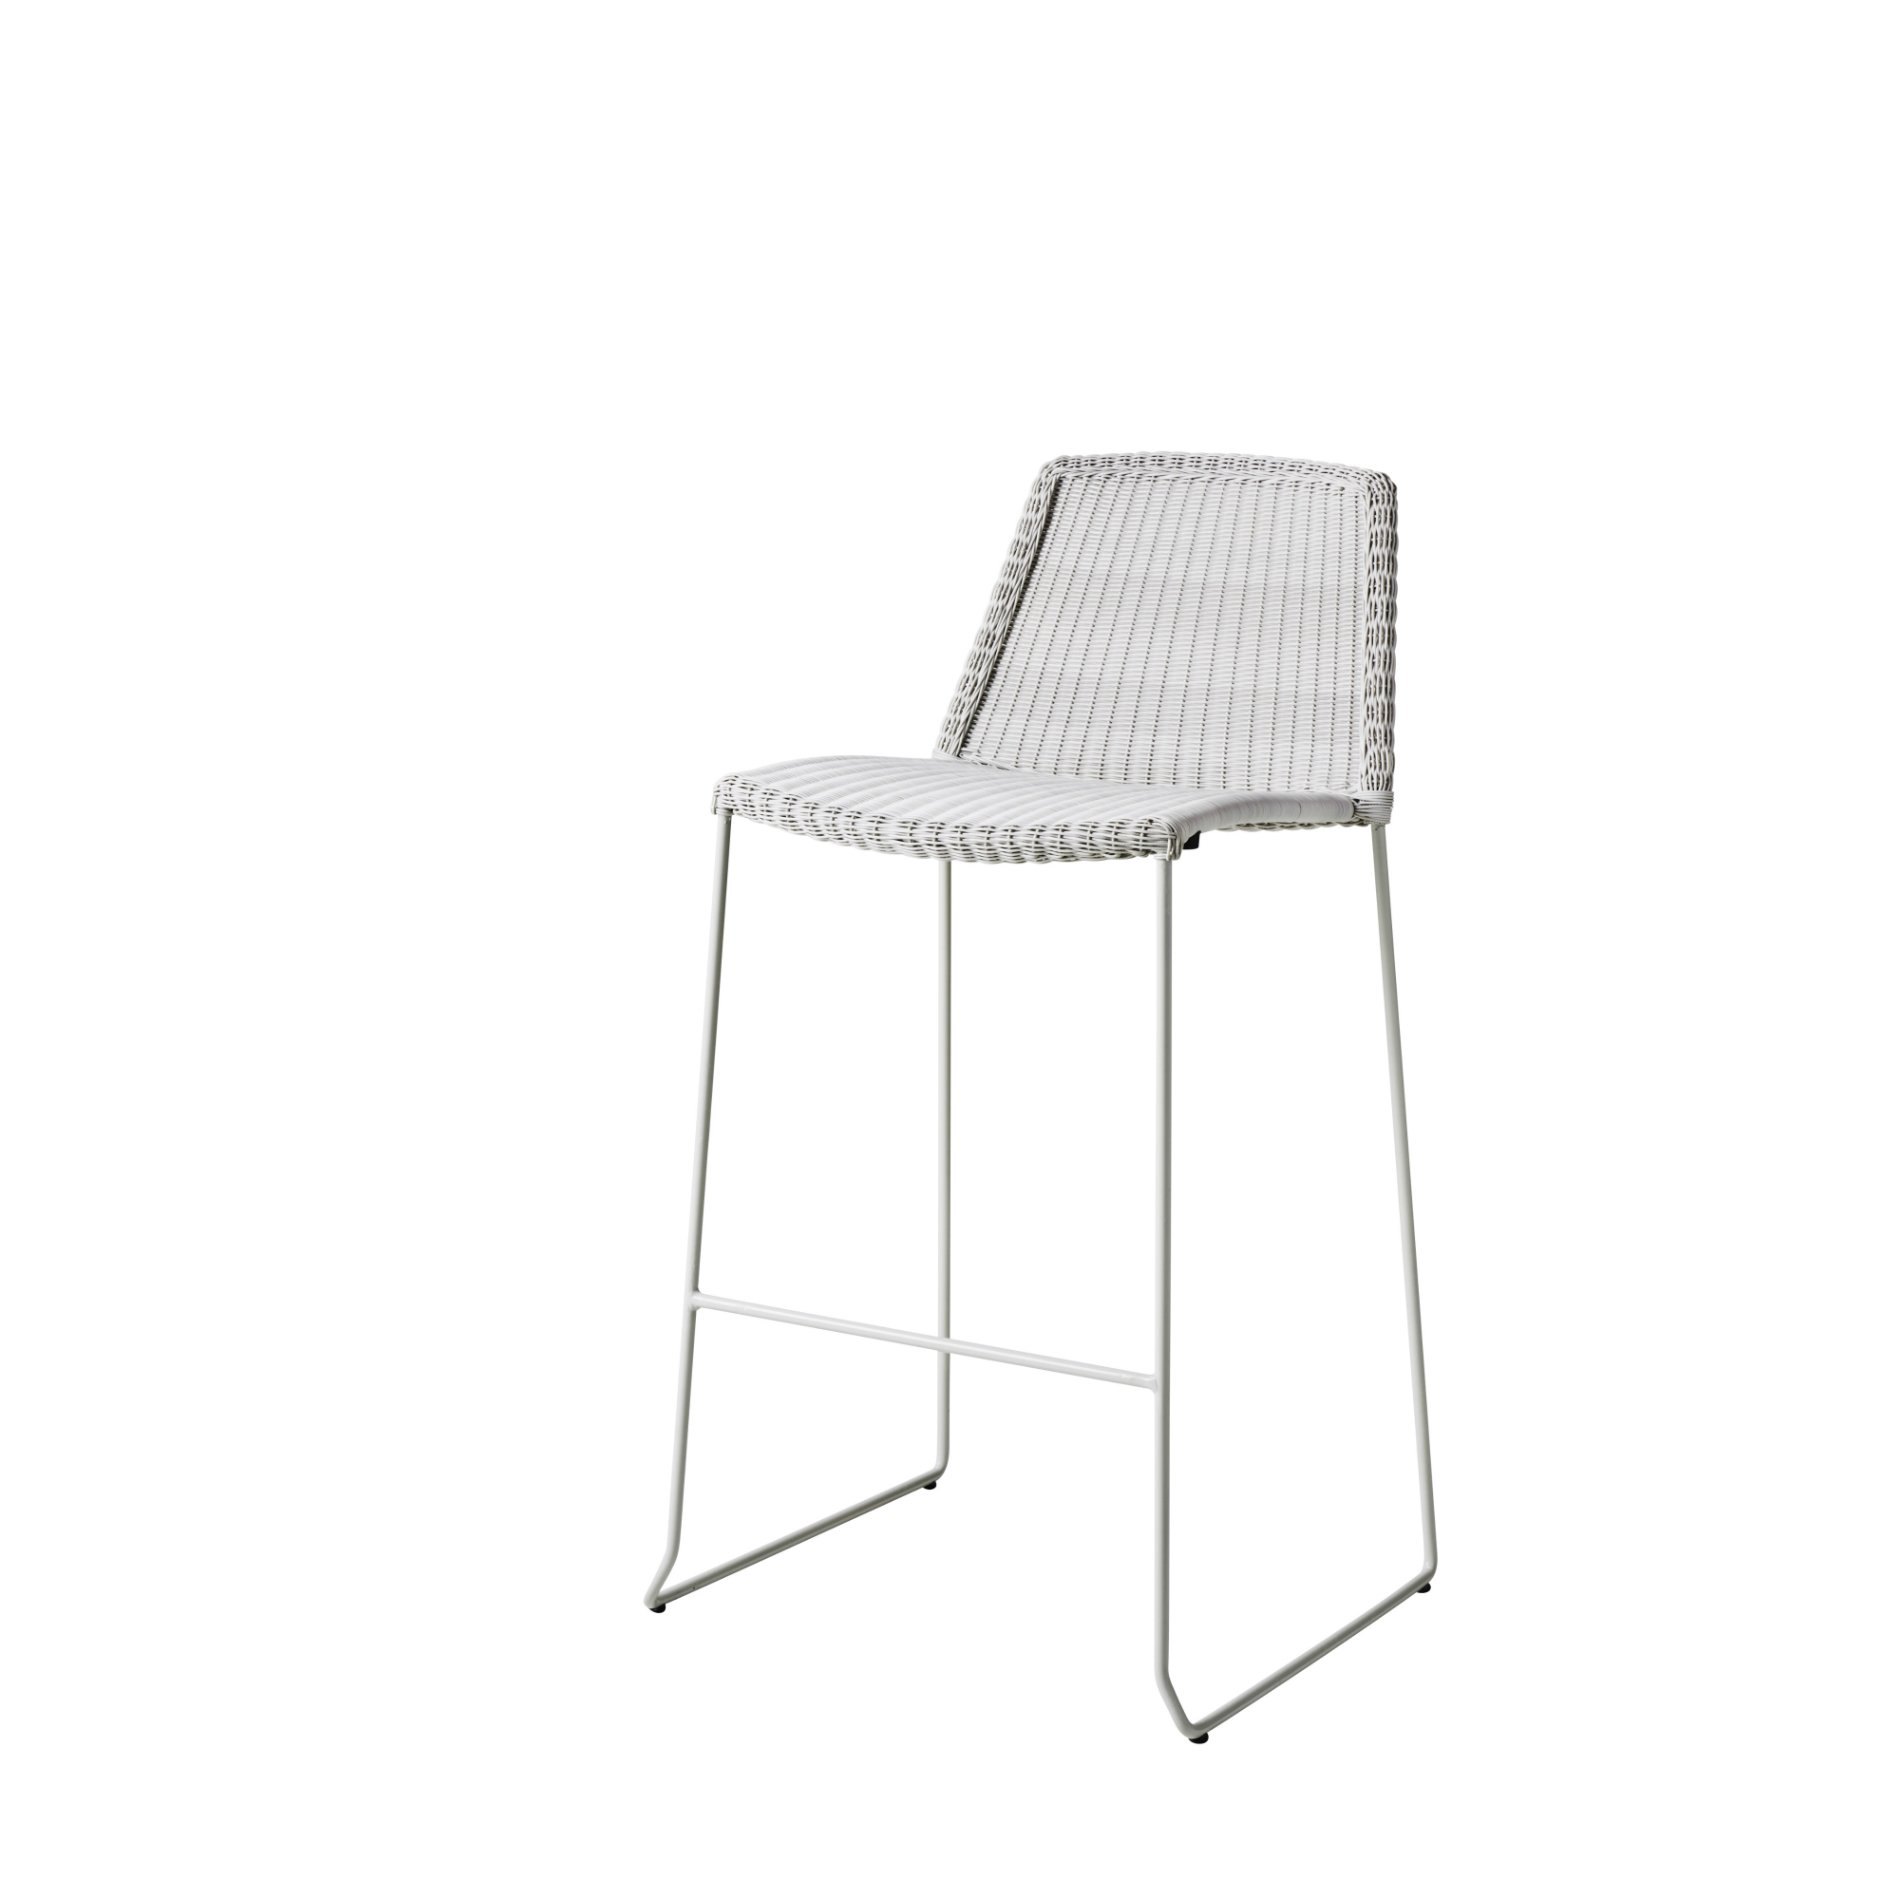 Cane line breeze cane line breeze lounge stoel voor for Rattan barhocker